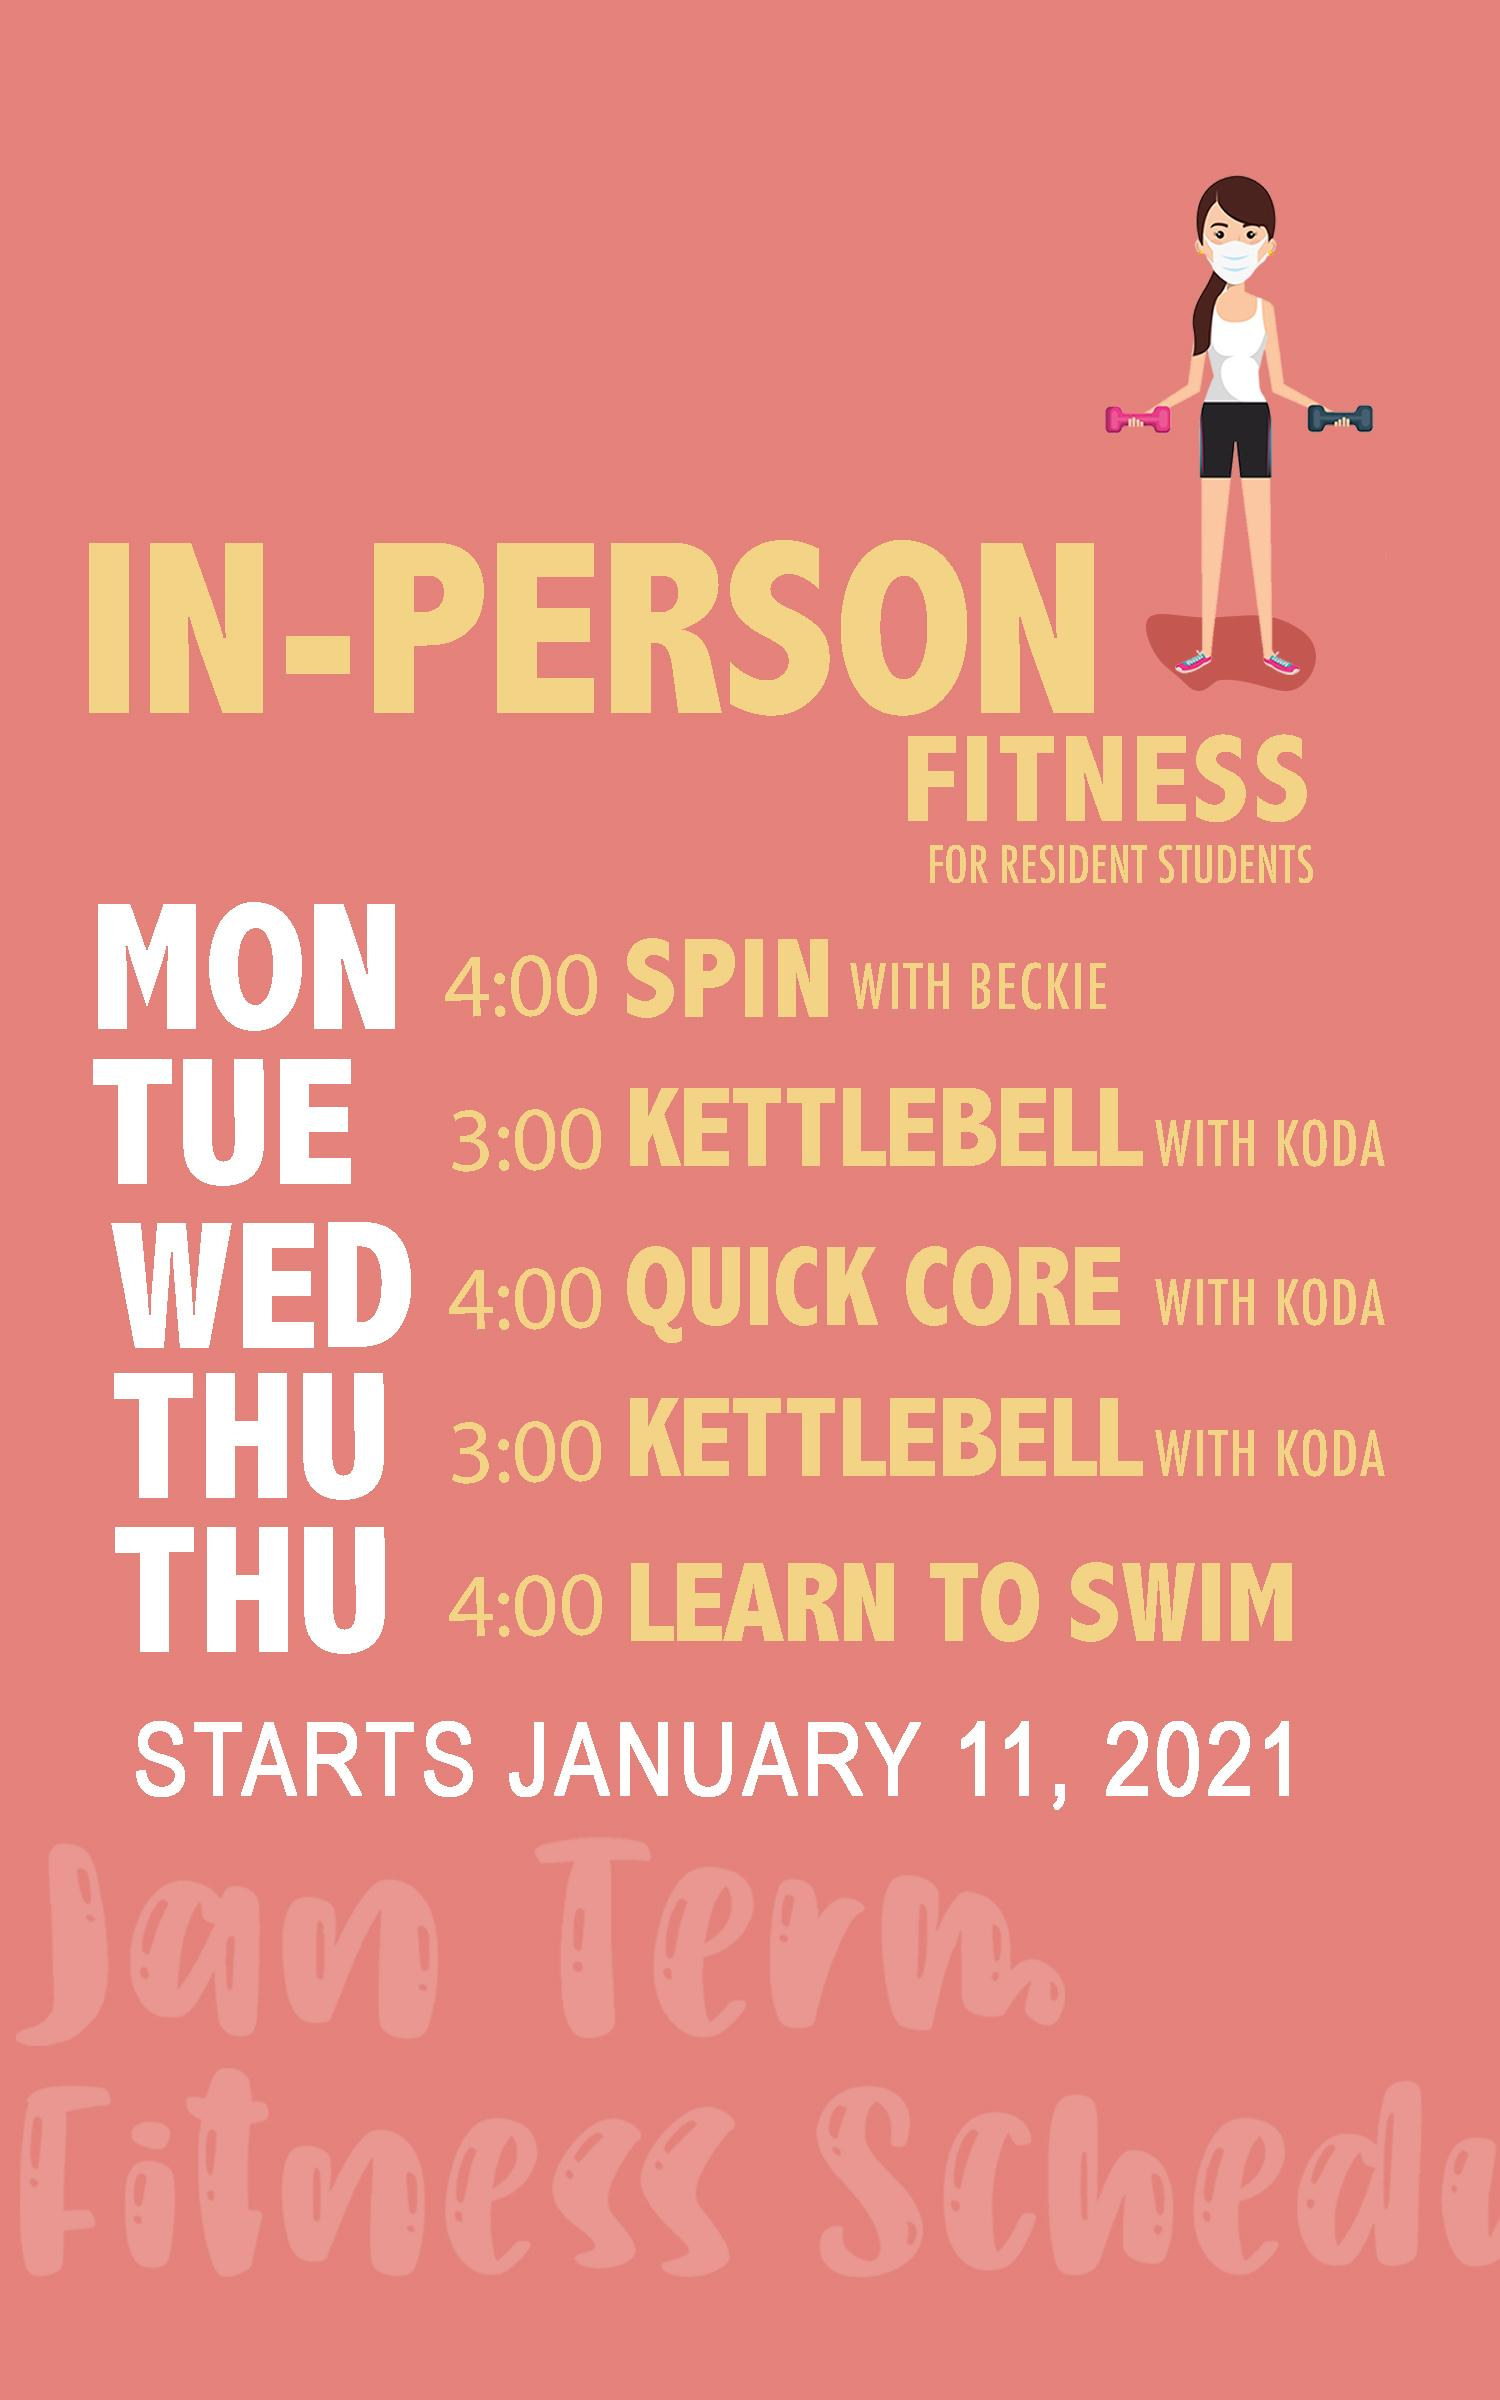 In-Person Fitness